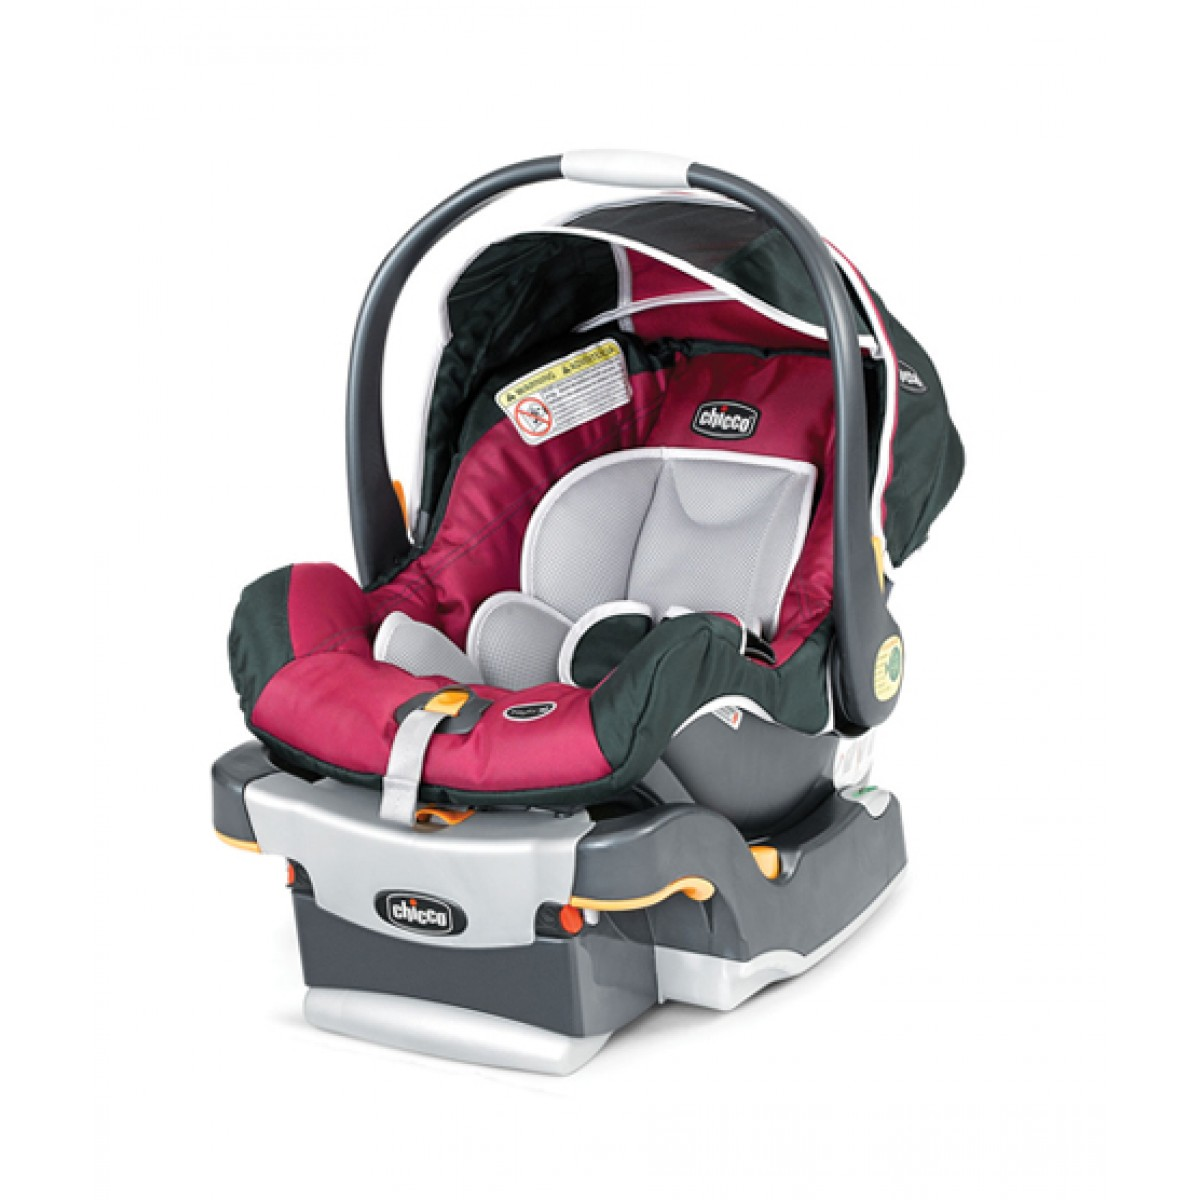 Chicco Keyfit 30 Infant Car Seat Price in Pakistan | Buy Chicco ...